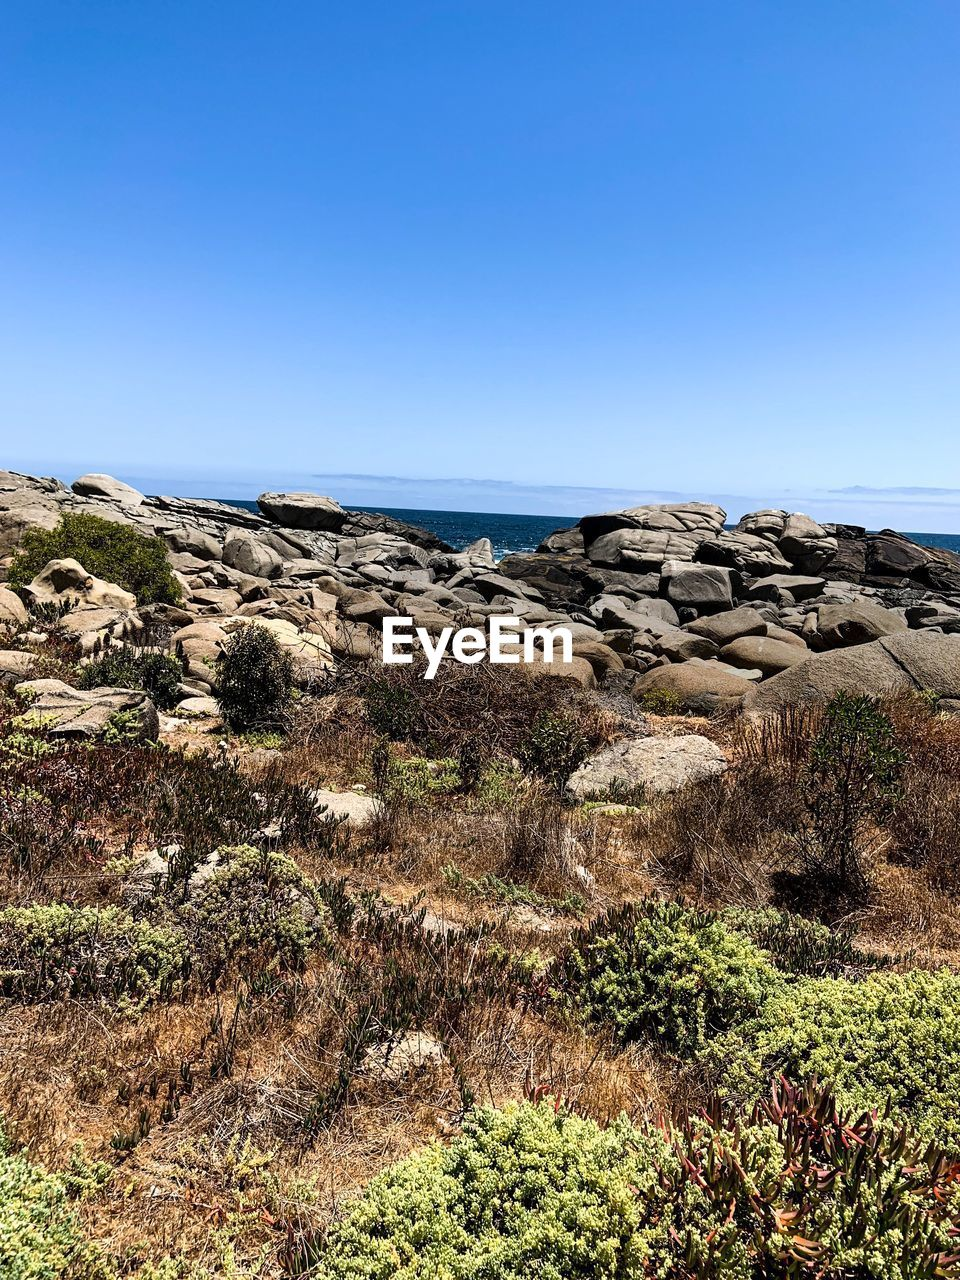 sky, beauty in nature, rock, clear sky, scenics - nature, tranquility, copy space, tranquil scene, plant, rock - object, nature, solid, day, non-urban scene, blue, sea, land, no people, water, horizon, horizon over water, outdoors, eroded, rocky coastline